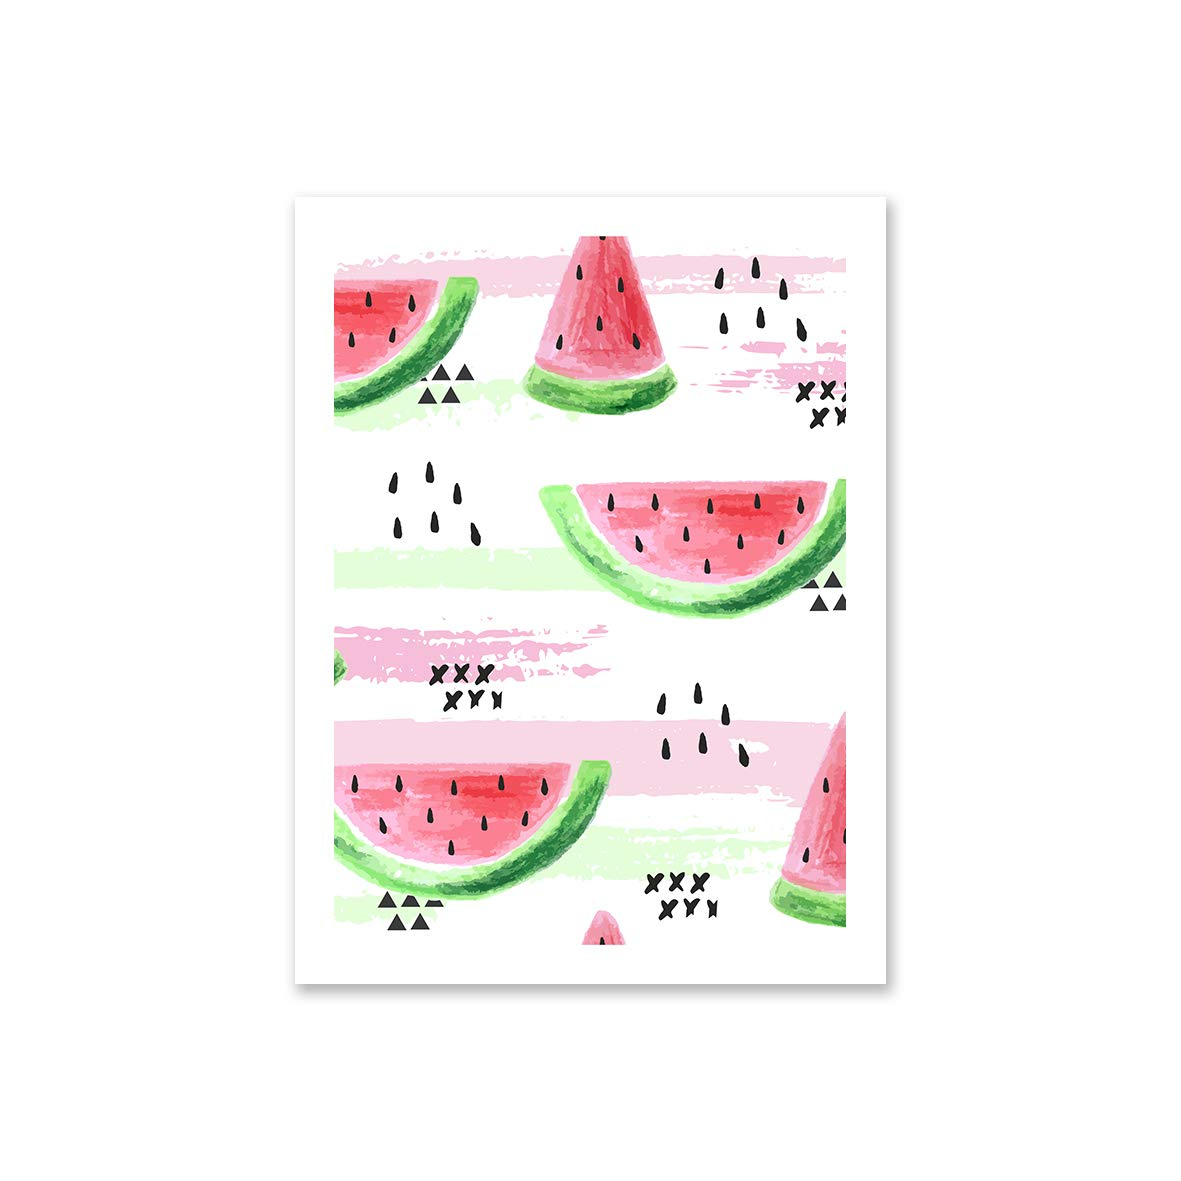 Unframed Premium Printing with Canon Japan Ink 12x16 inch Watermelon, Coconut, Pineapple Set of 3 TUNAstudio Tropical Vibes | Designed Canvas Prints